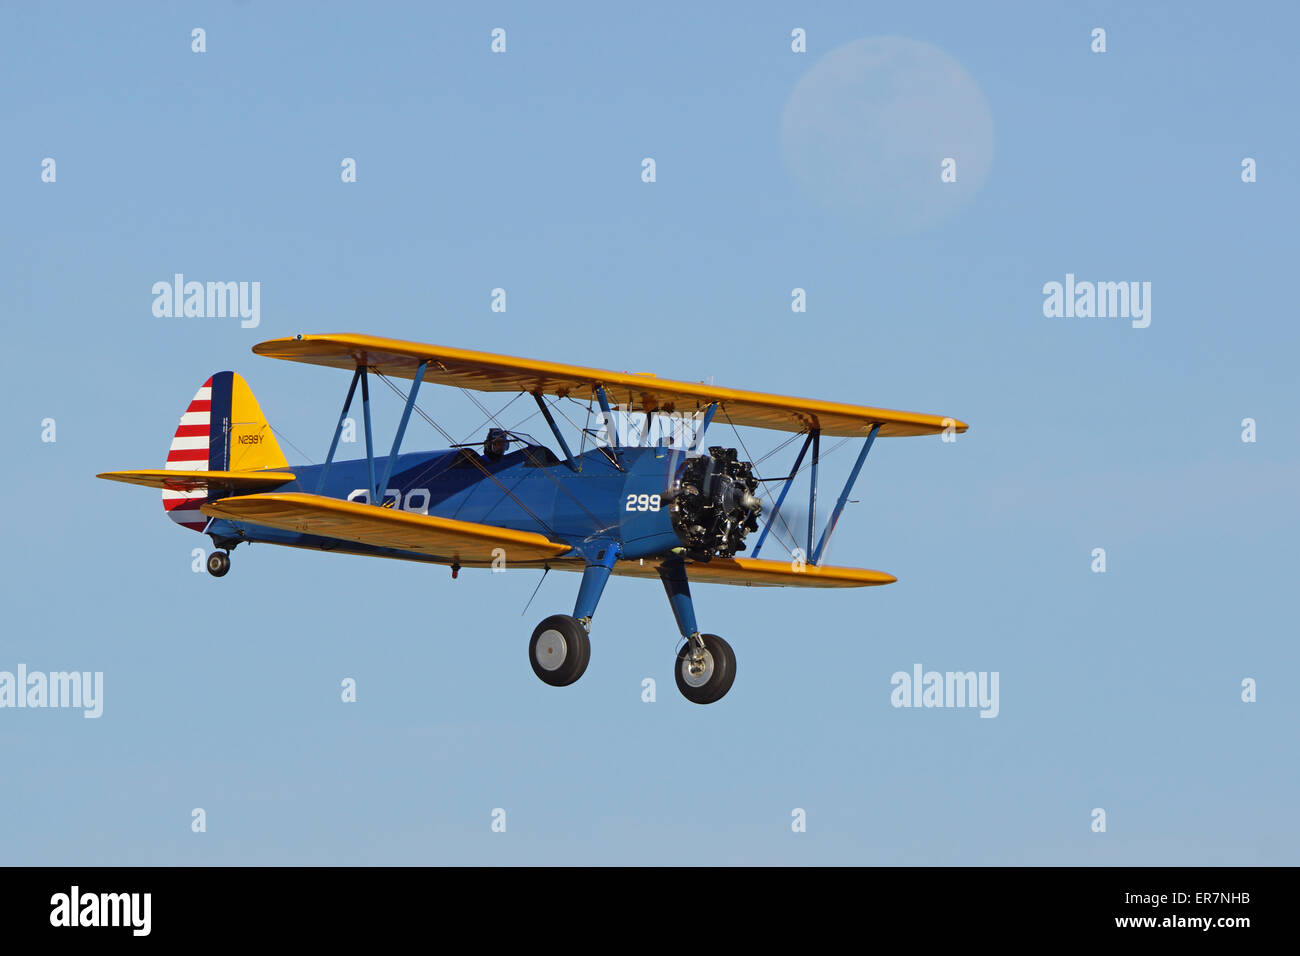 Vintage Bi-plane Airplane flying at 2015 Planes of Fame Air Show - Stock Image